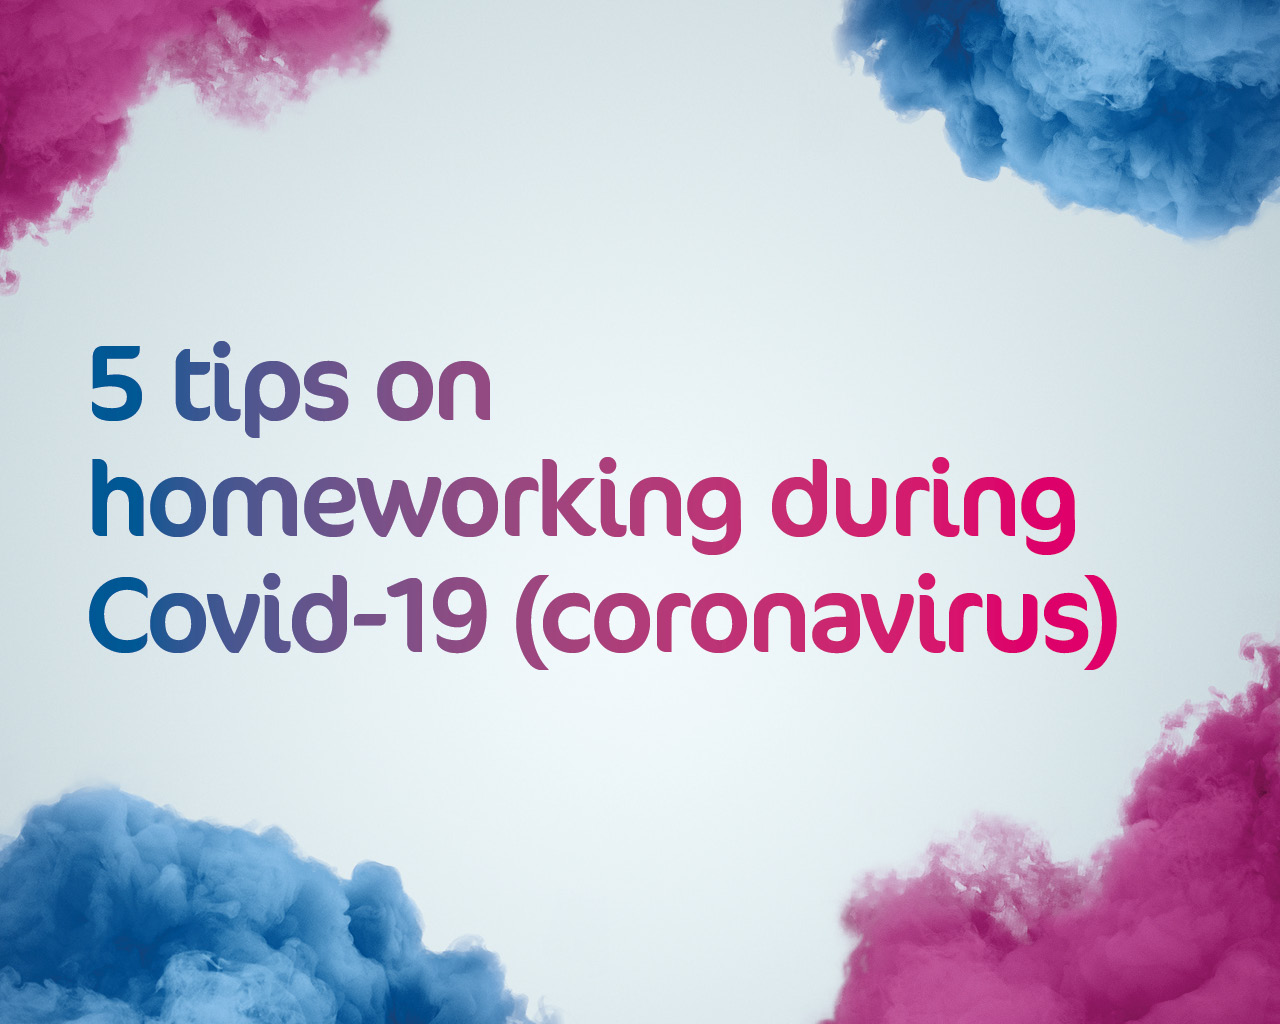 5 tips for homeworking